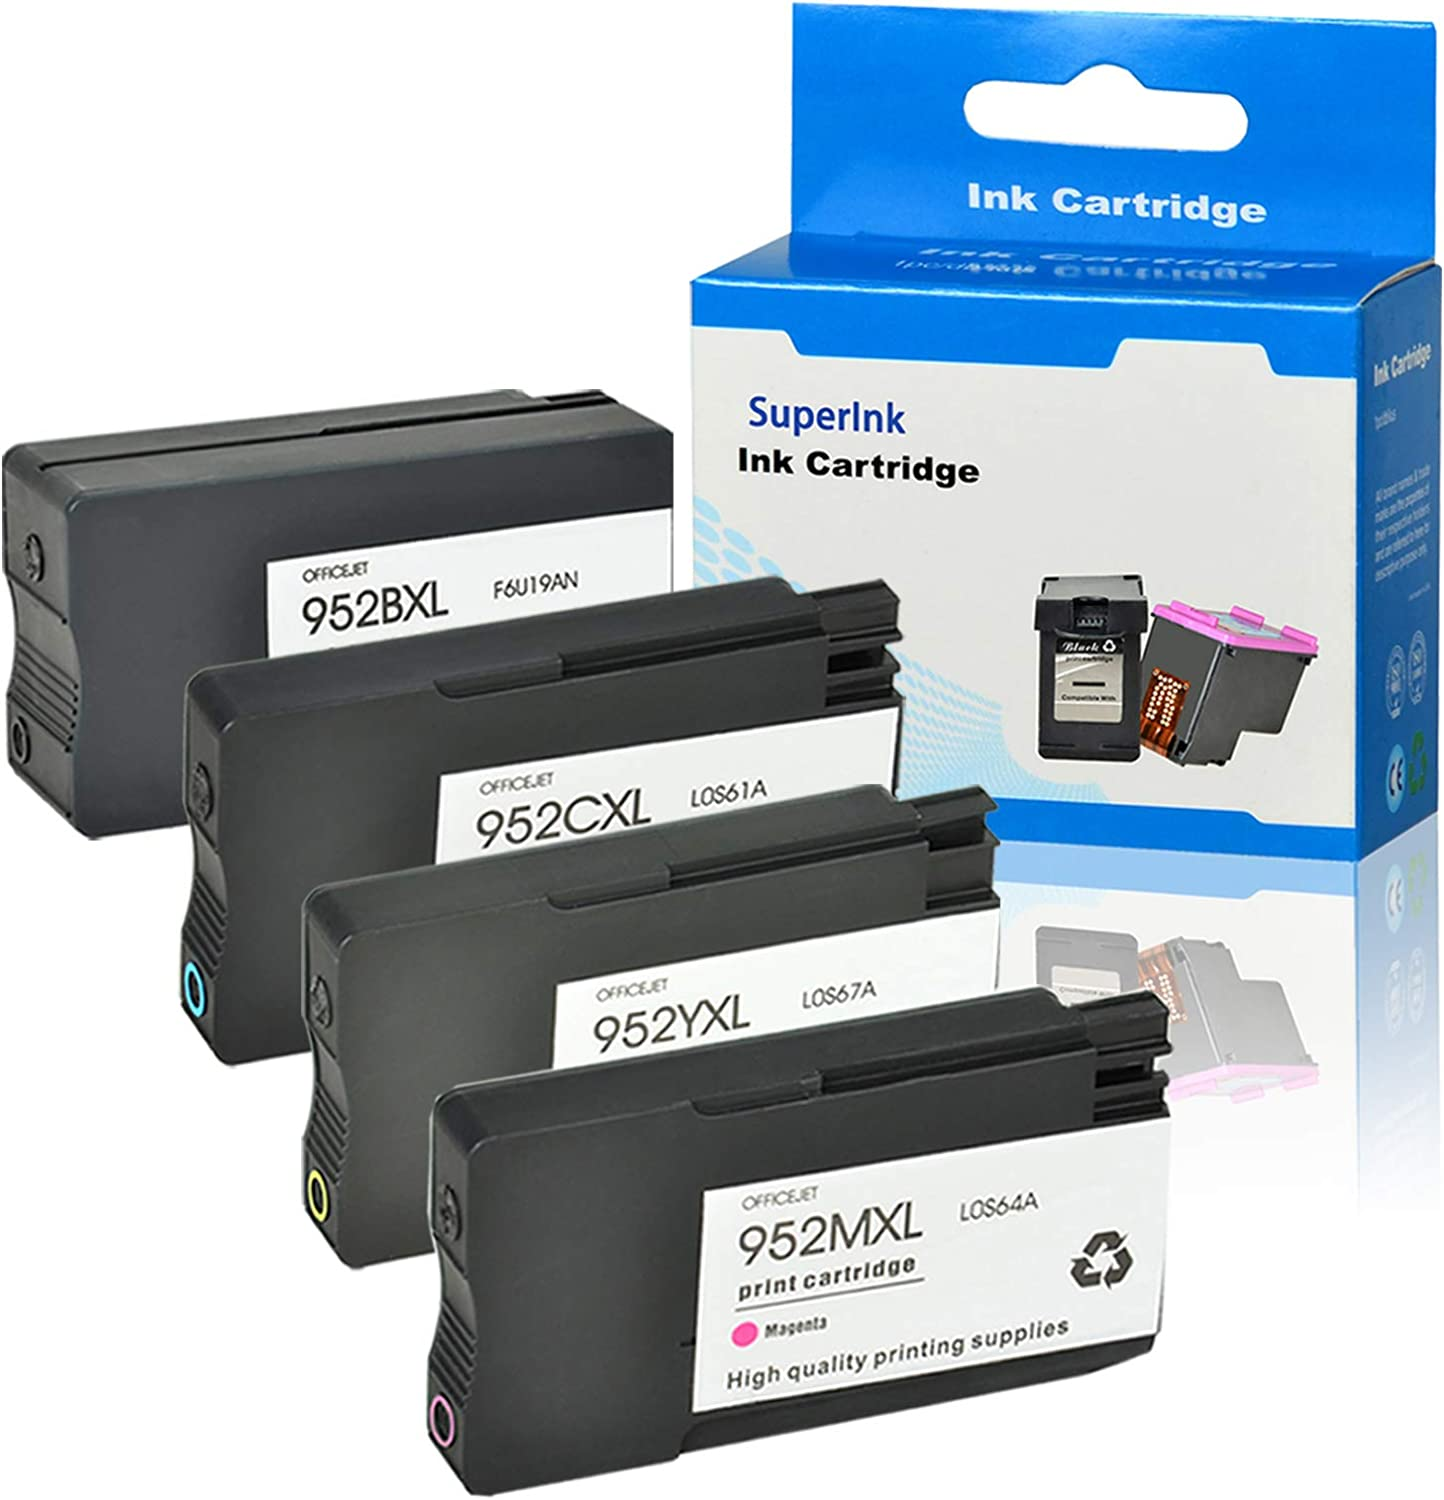 SuperInk Remanufactured Ink Cartridge Replacement Compatible for HP 952 XL 952XL to use with OfficeJet Pro 8710 8720 7740 8740 7720 8700 8715 (1 Black, 1 Cyan, 1 Magenta, 1 Yellow, 4 Pack)